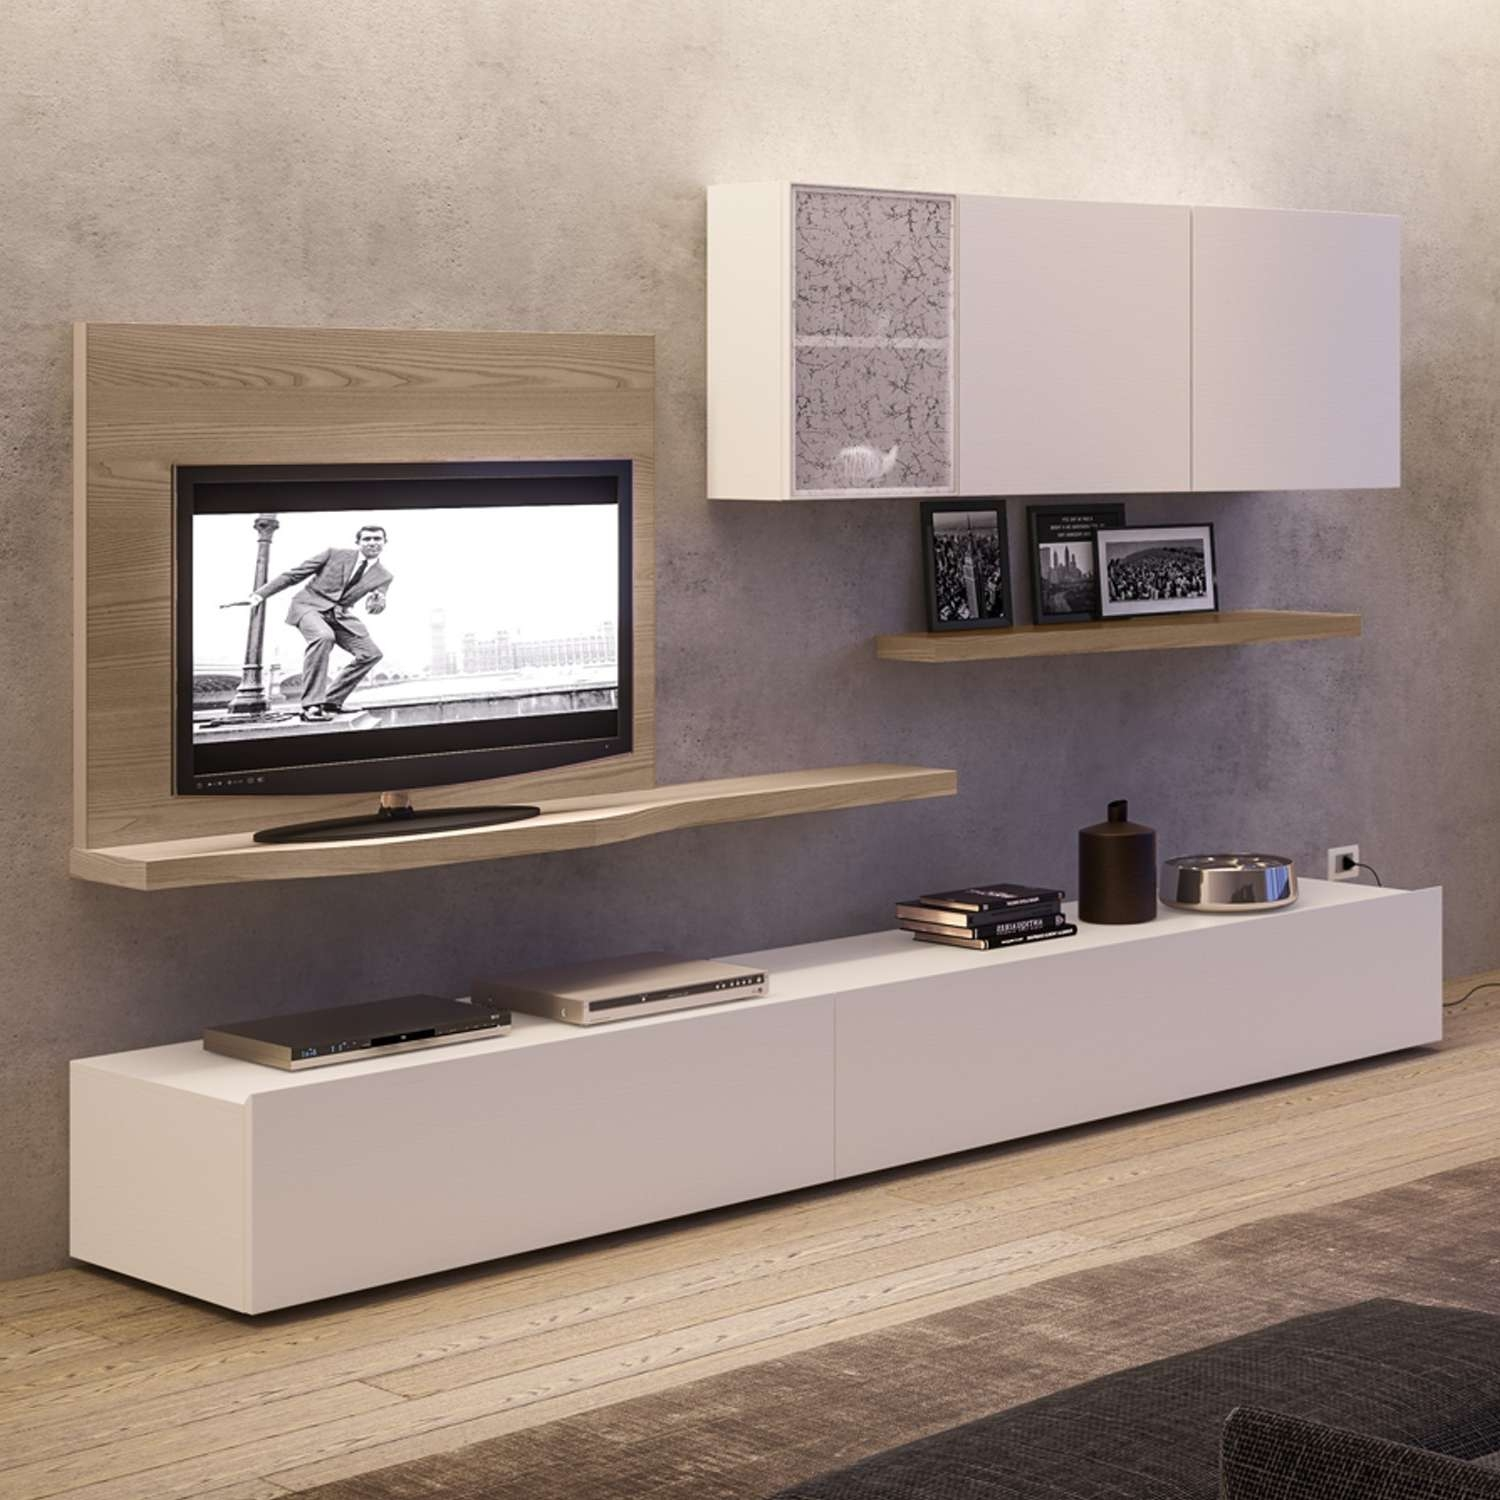 Excellent Modular Tv Stand With Storage Showcasing Mounting Wall Throughout Modular Tv Stands Furniture (View 11 of 15)